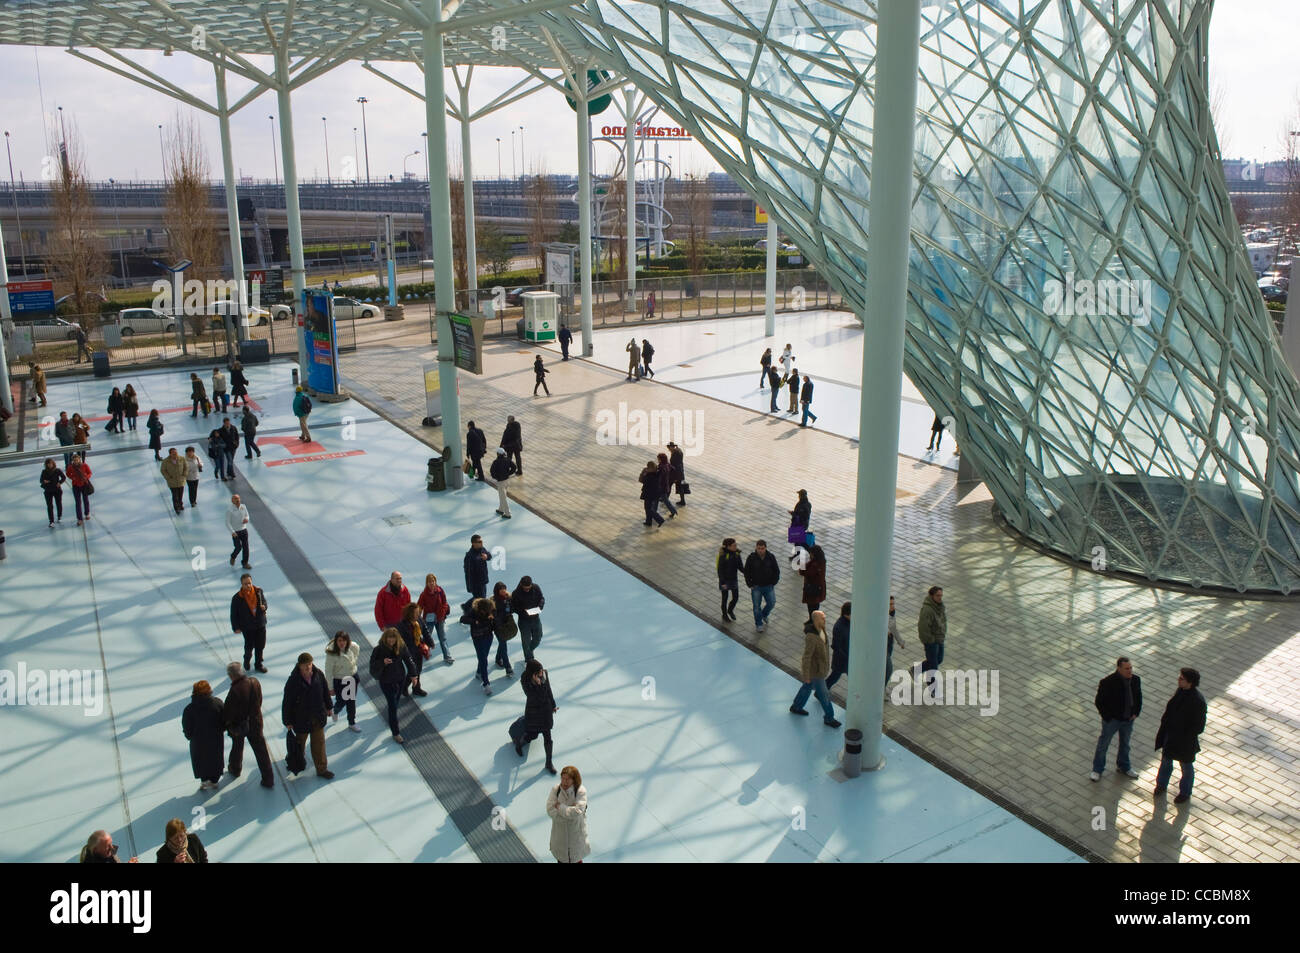 new milan trade fair, rho, italy - Stock Image